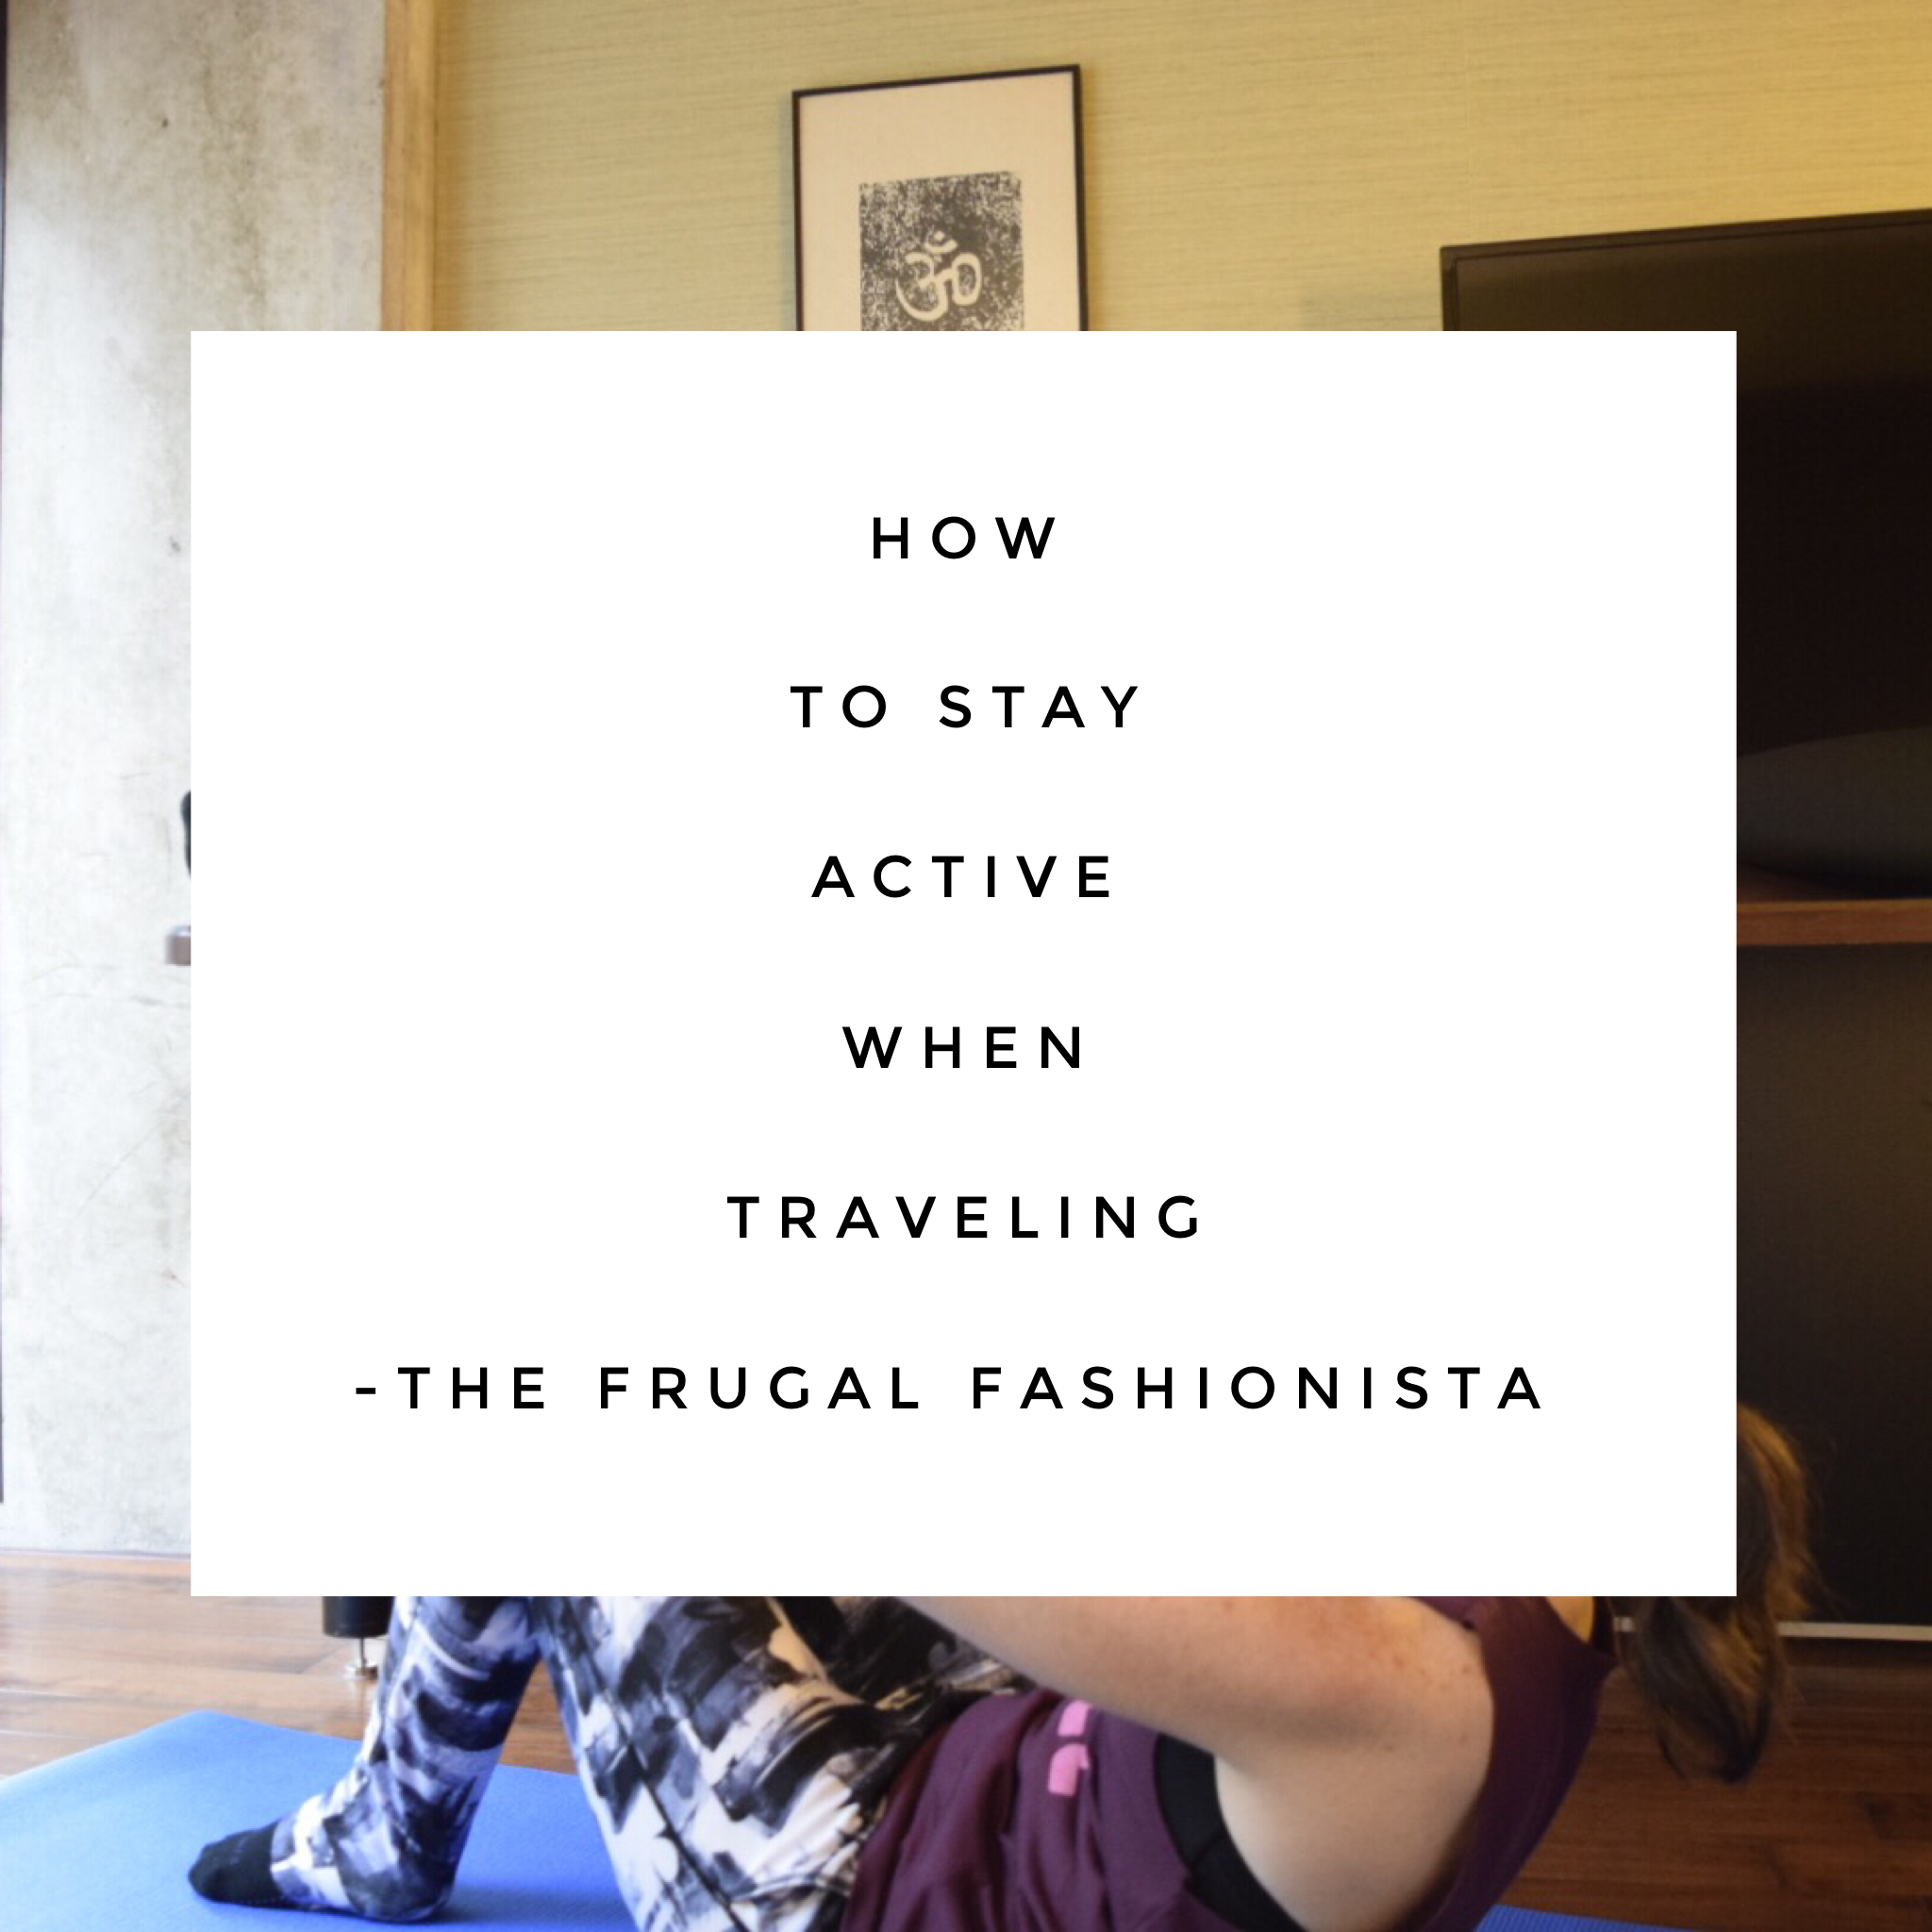 The Frugal Fashionista: How to Stay Active When Traveling